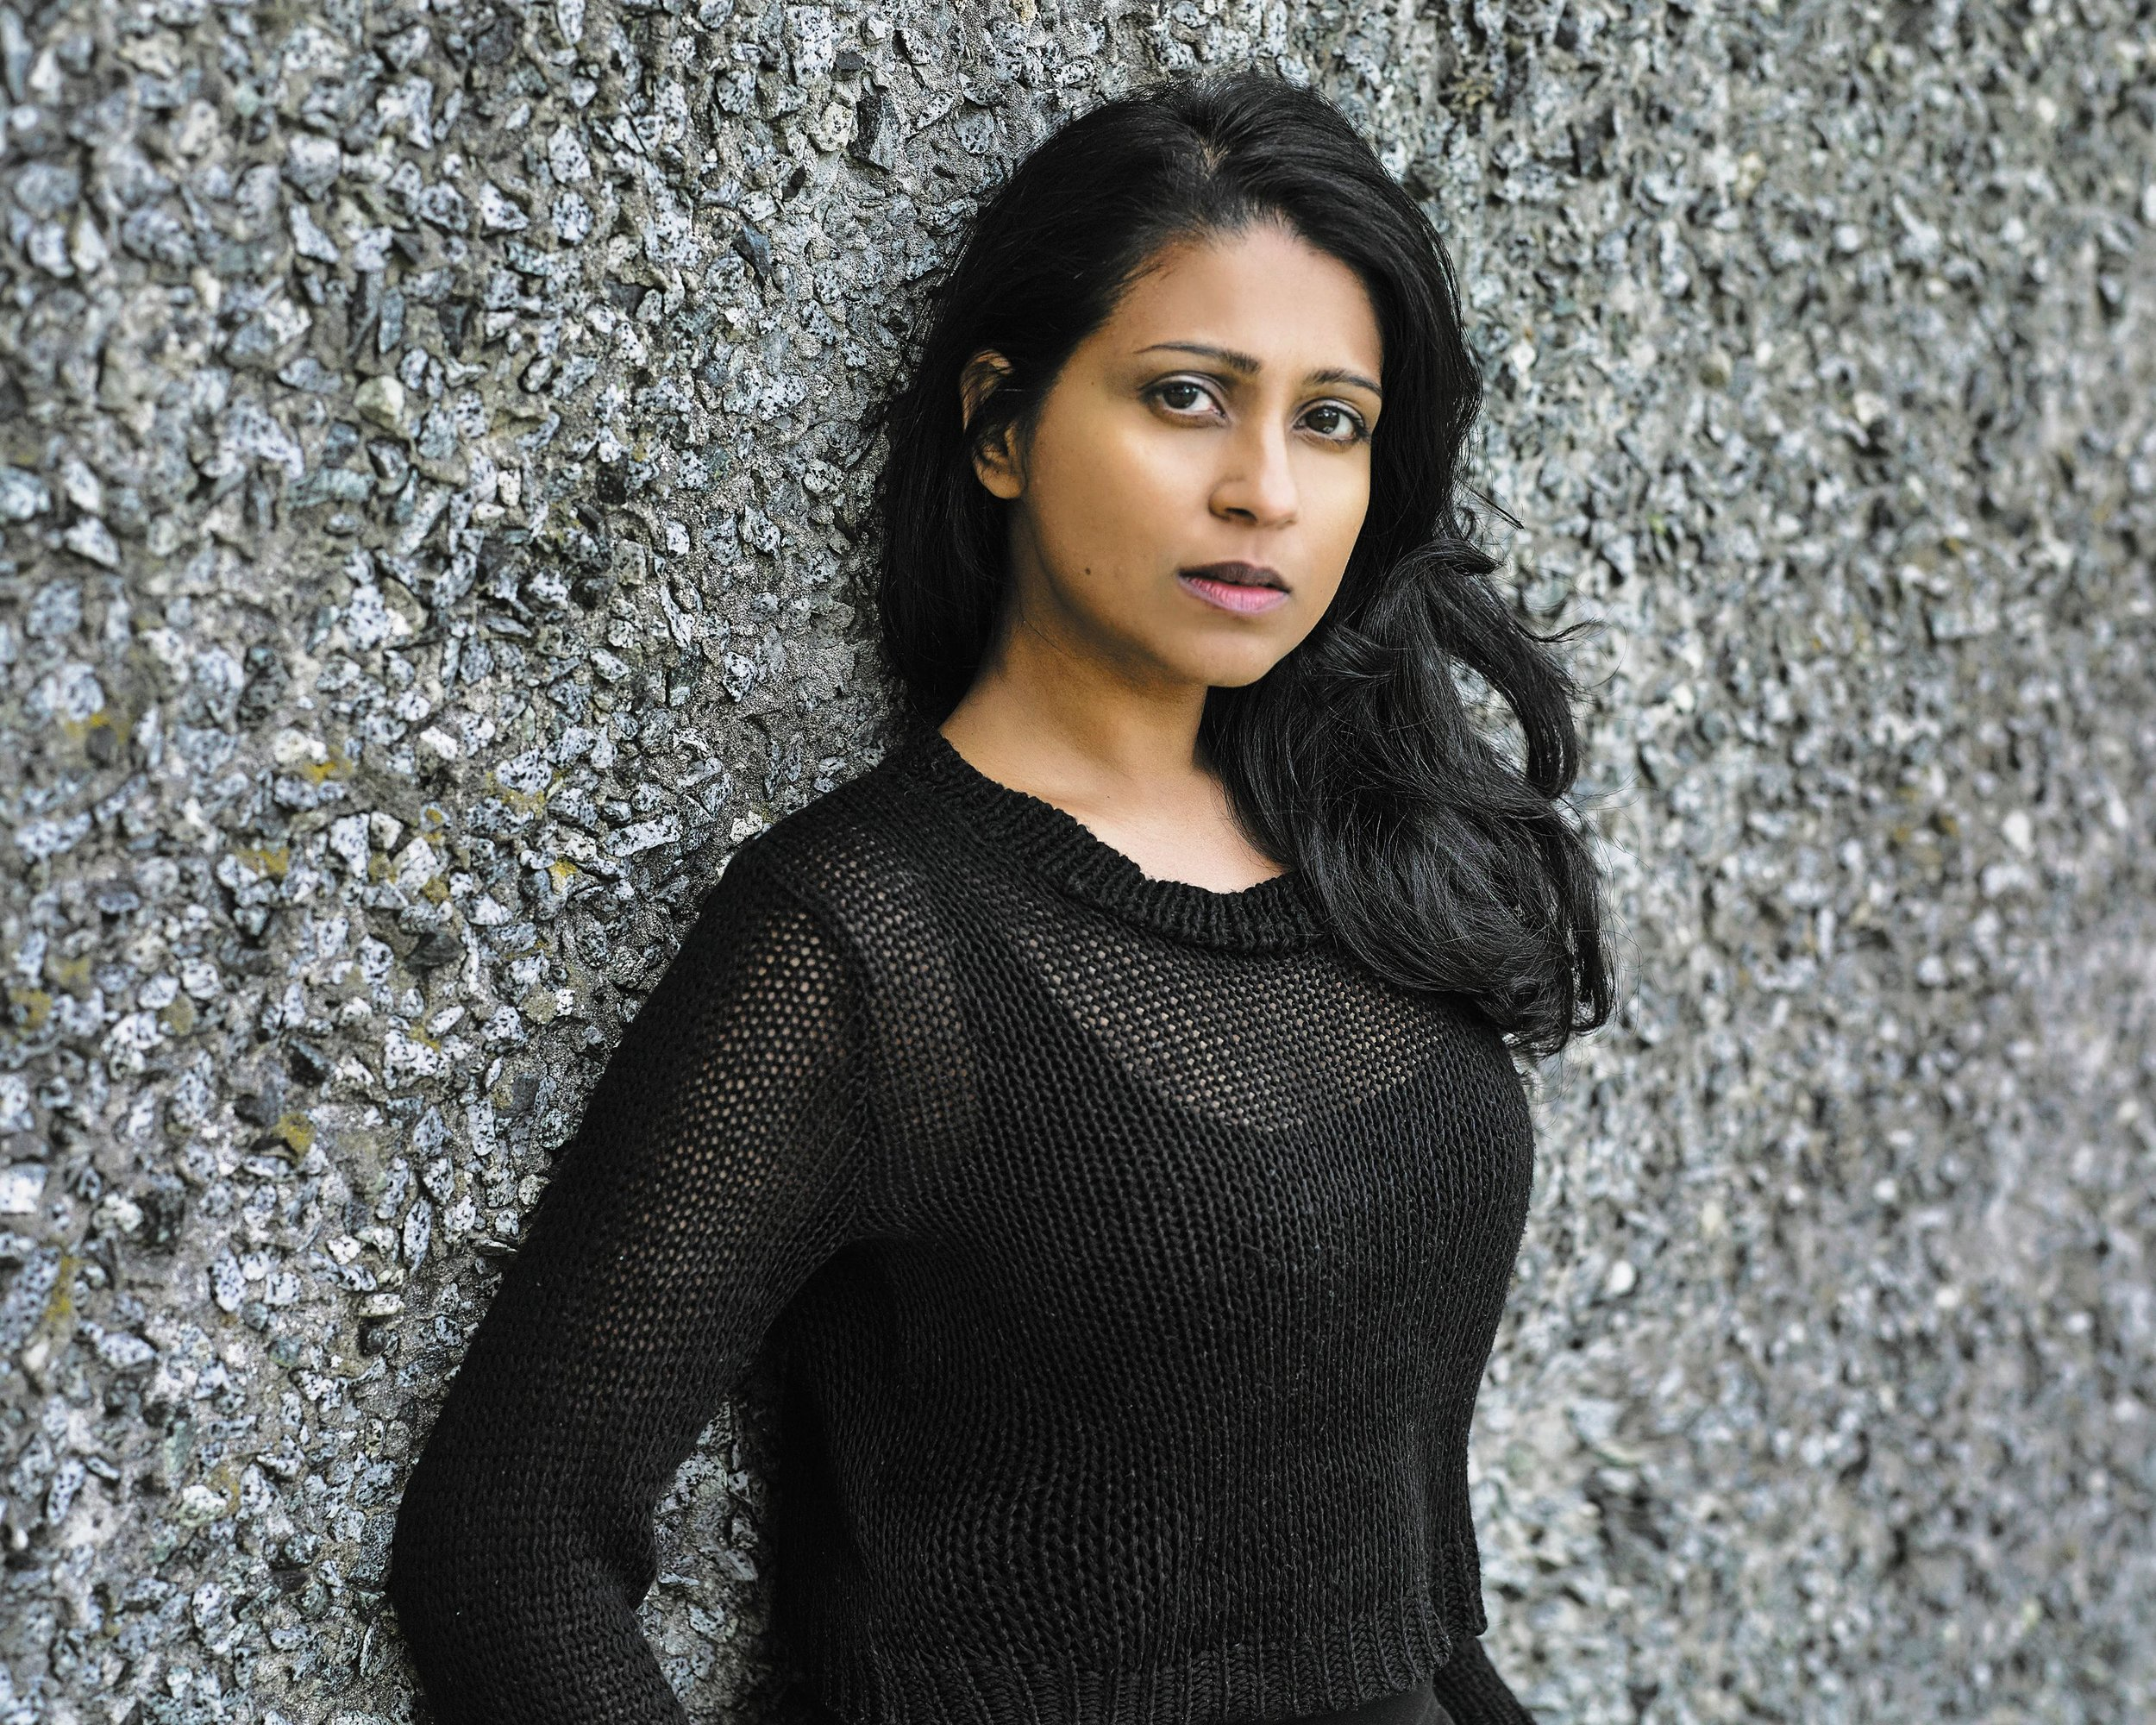 Sheena Kamal - Merry or Pippin from Lord Of The Rings. These are my people. We'll eat a few breakfasts, have some ale and tell each other stories about how we vanquished our enemies and saved the world.